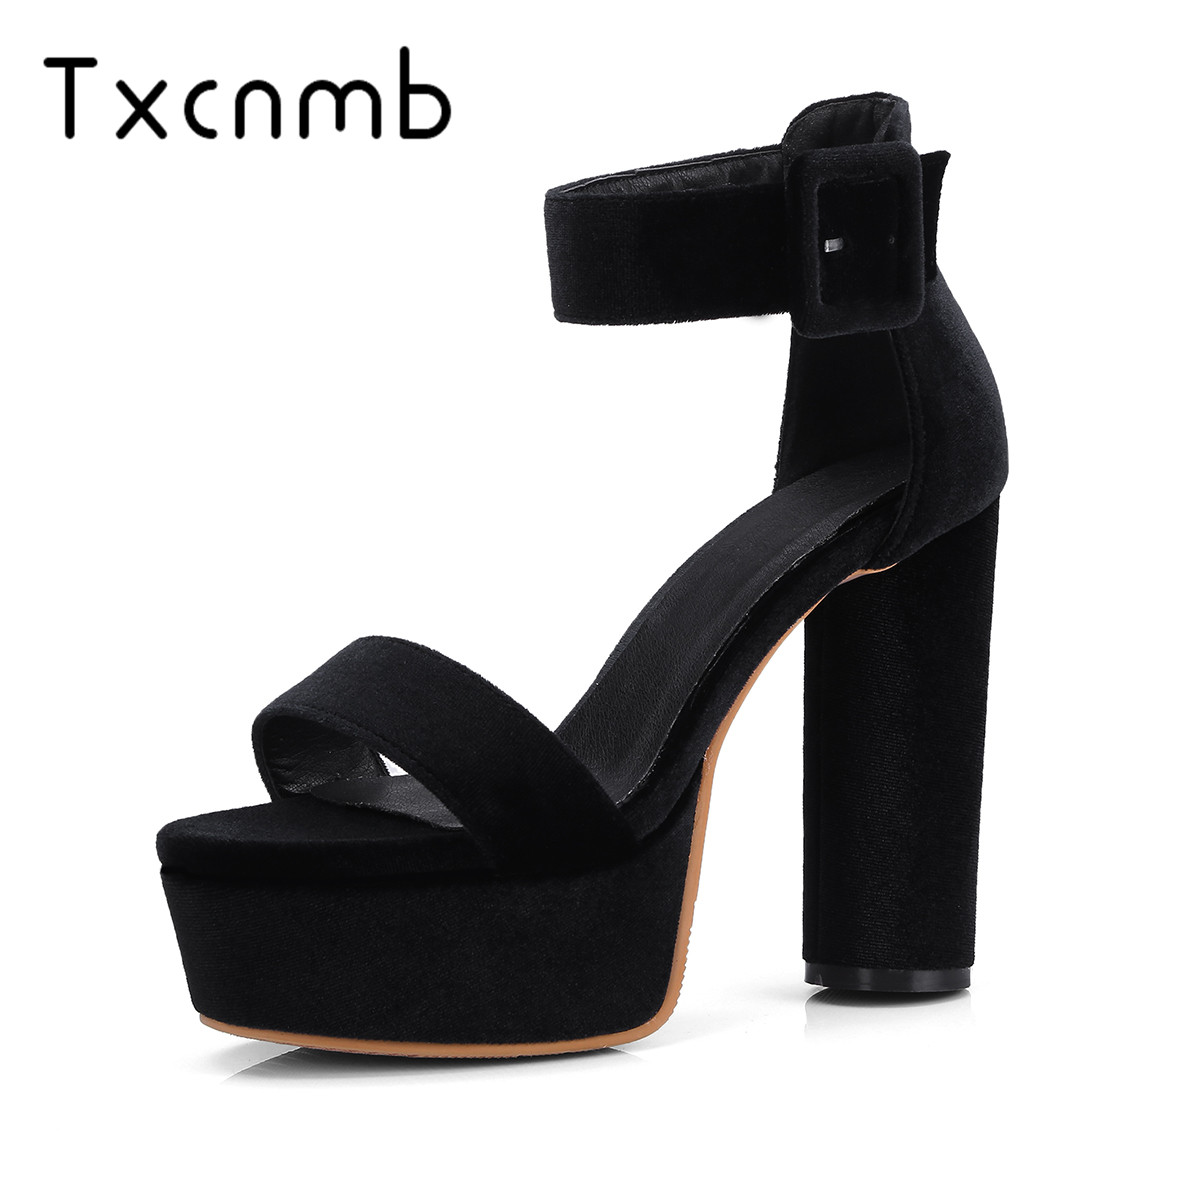 TXCNMB Fashion Elegant Super Woman sandals 2019 New Summer Party <font><b>Shoes</b></font> Woman wedding <font><b>Sexy</b></font> Buckle Prom <font><b>Shoes</b></font> big <font><b>size</b></font> 12 <font><b>11</b></font> image